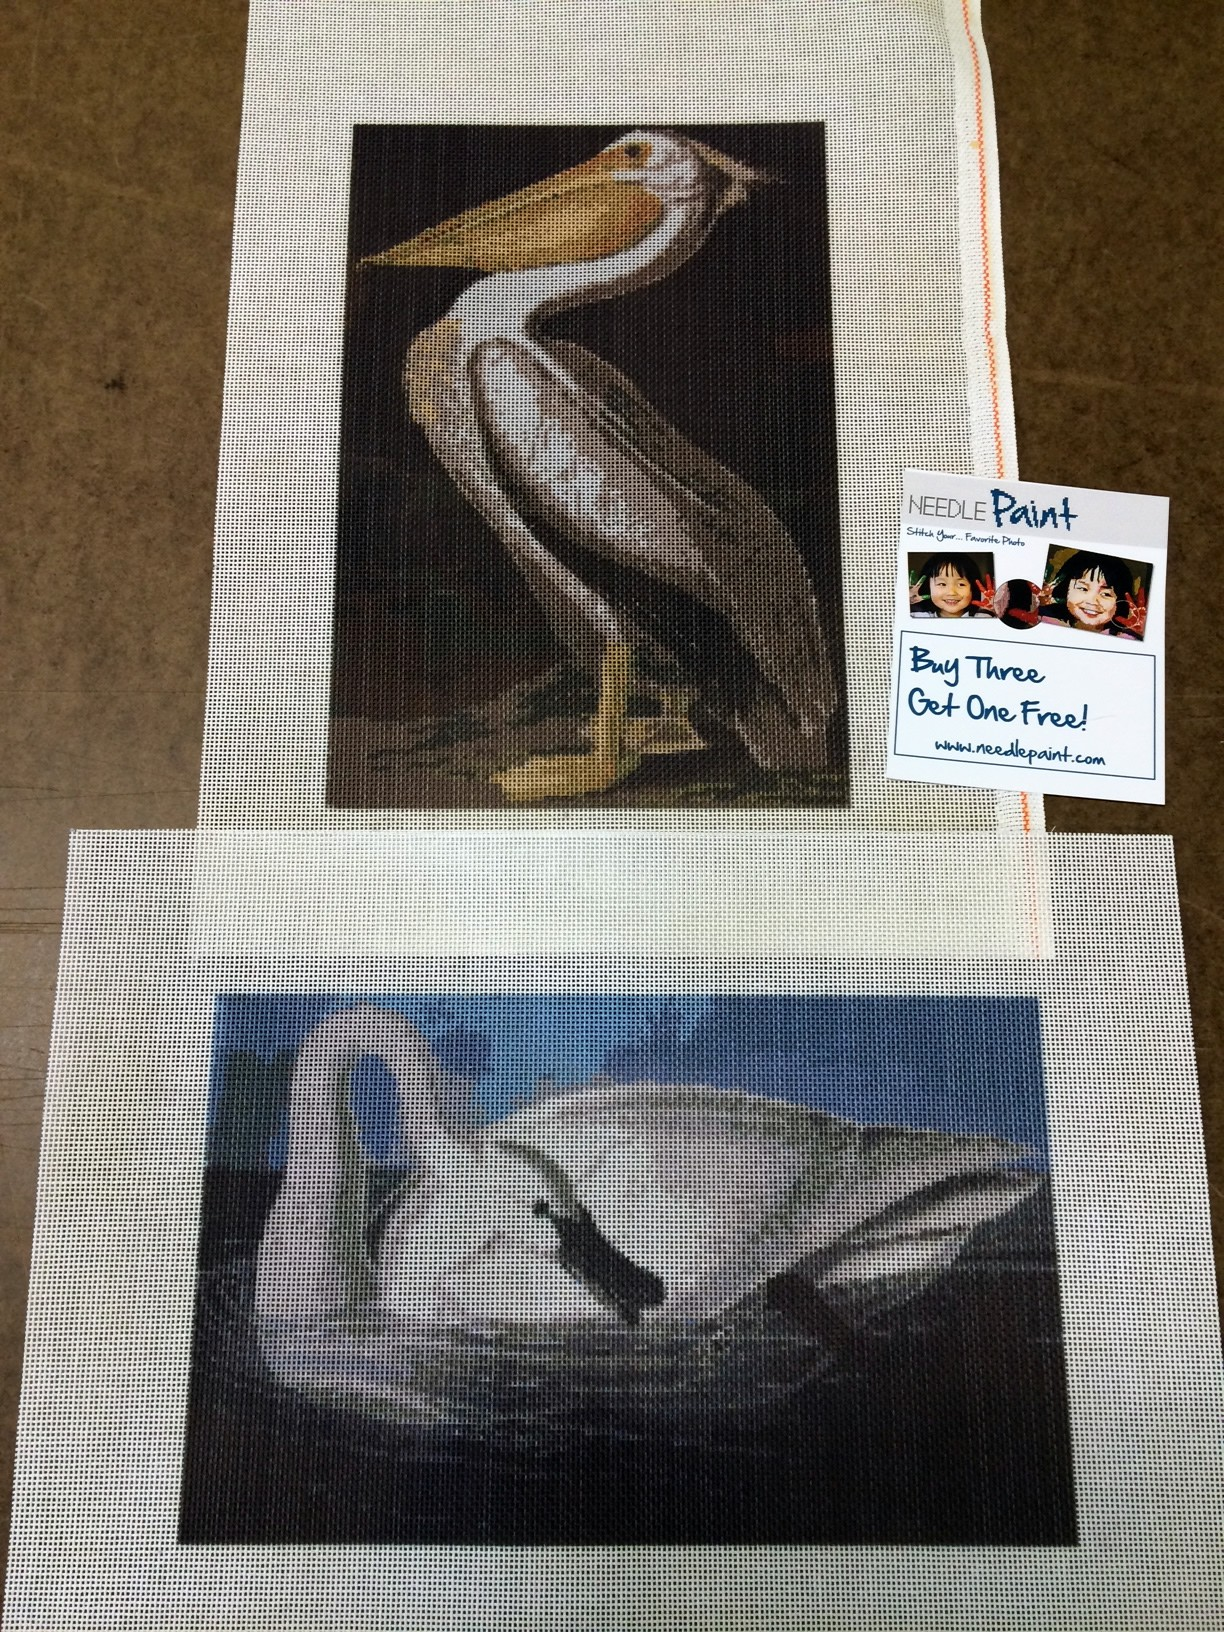 Audubon Swan and White Pelican Needlepoint Kits